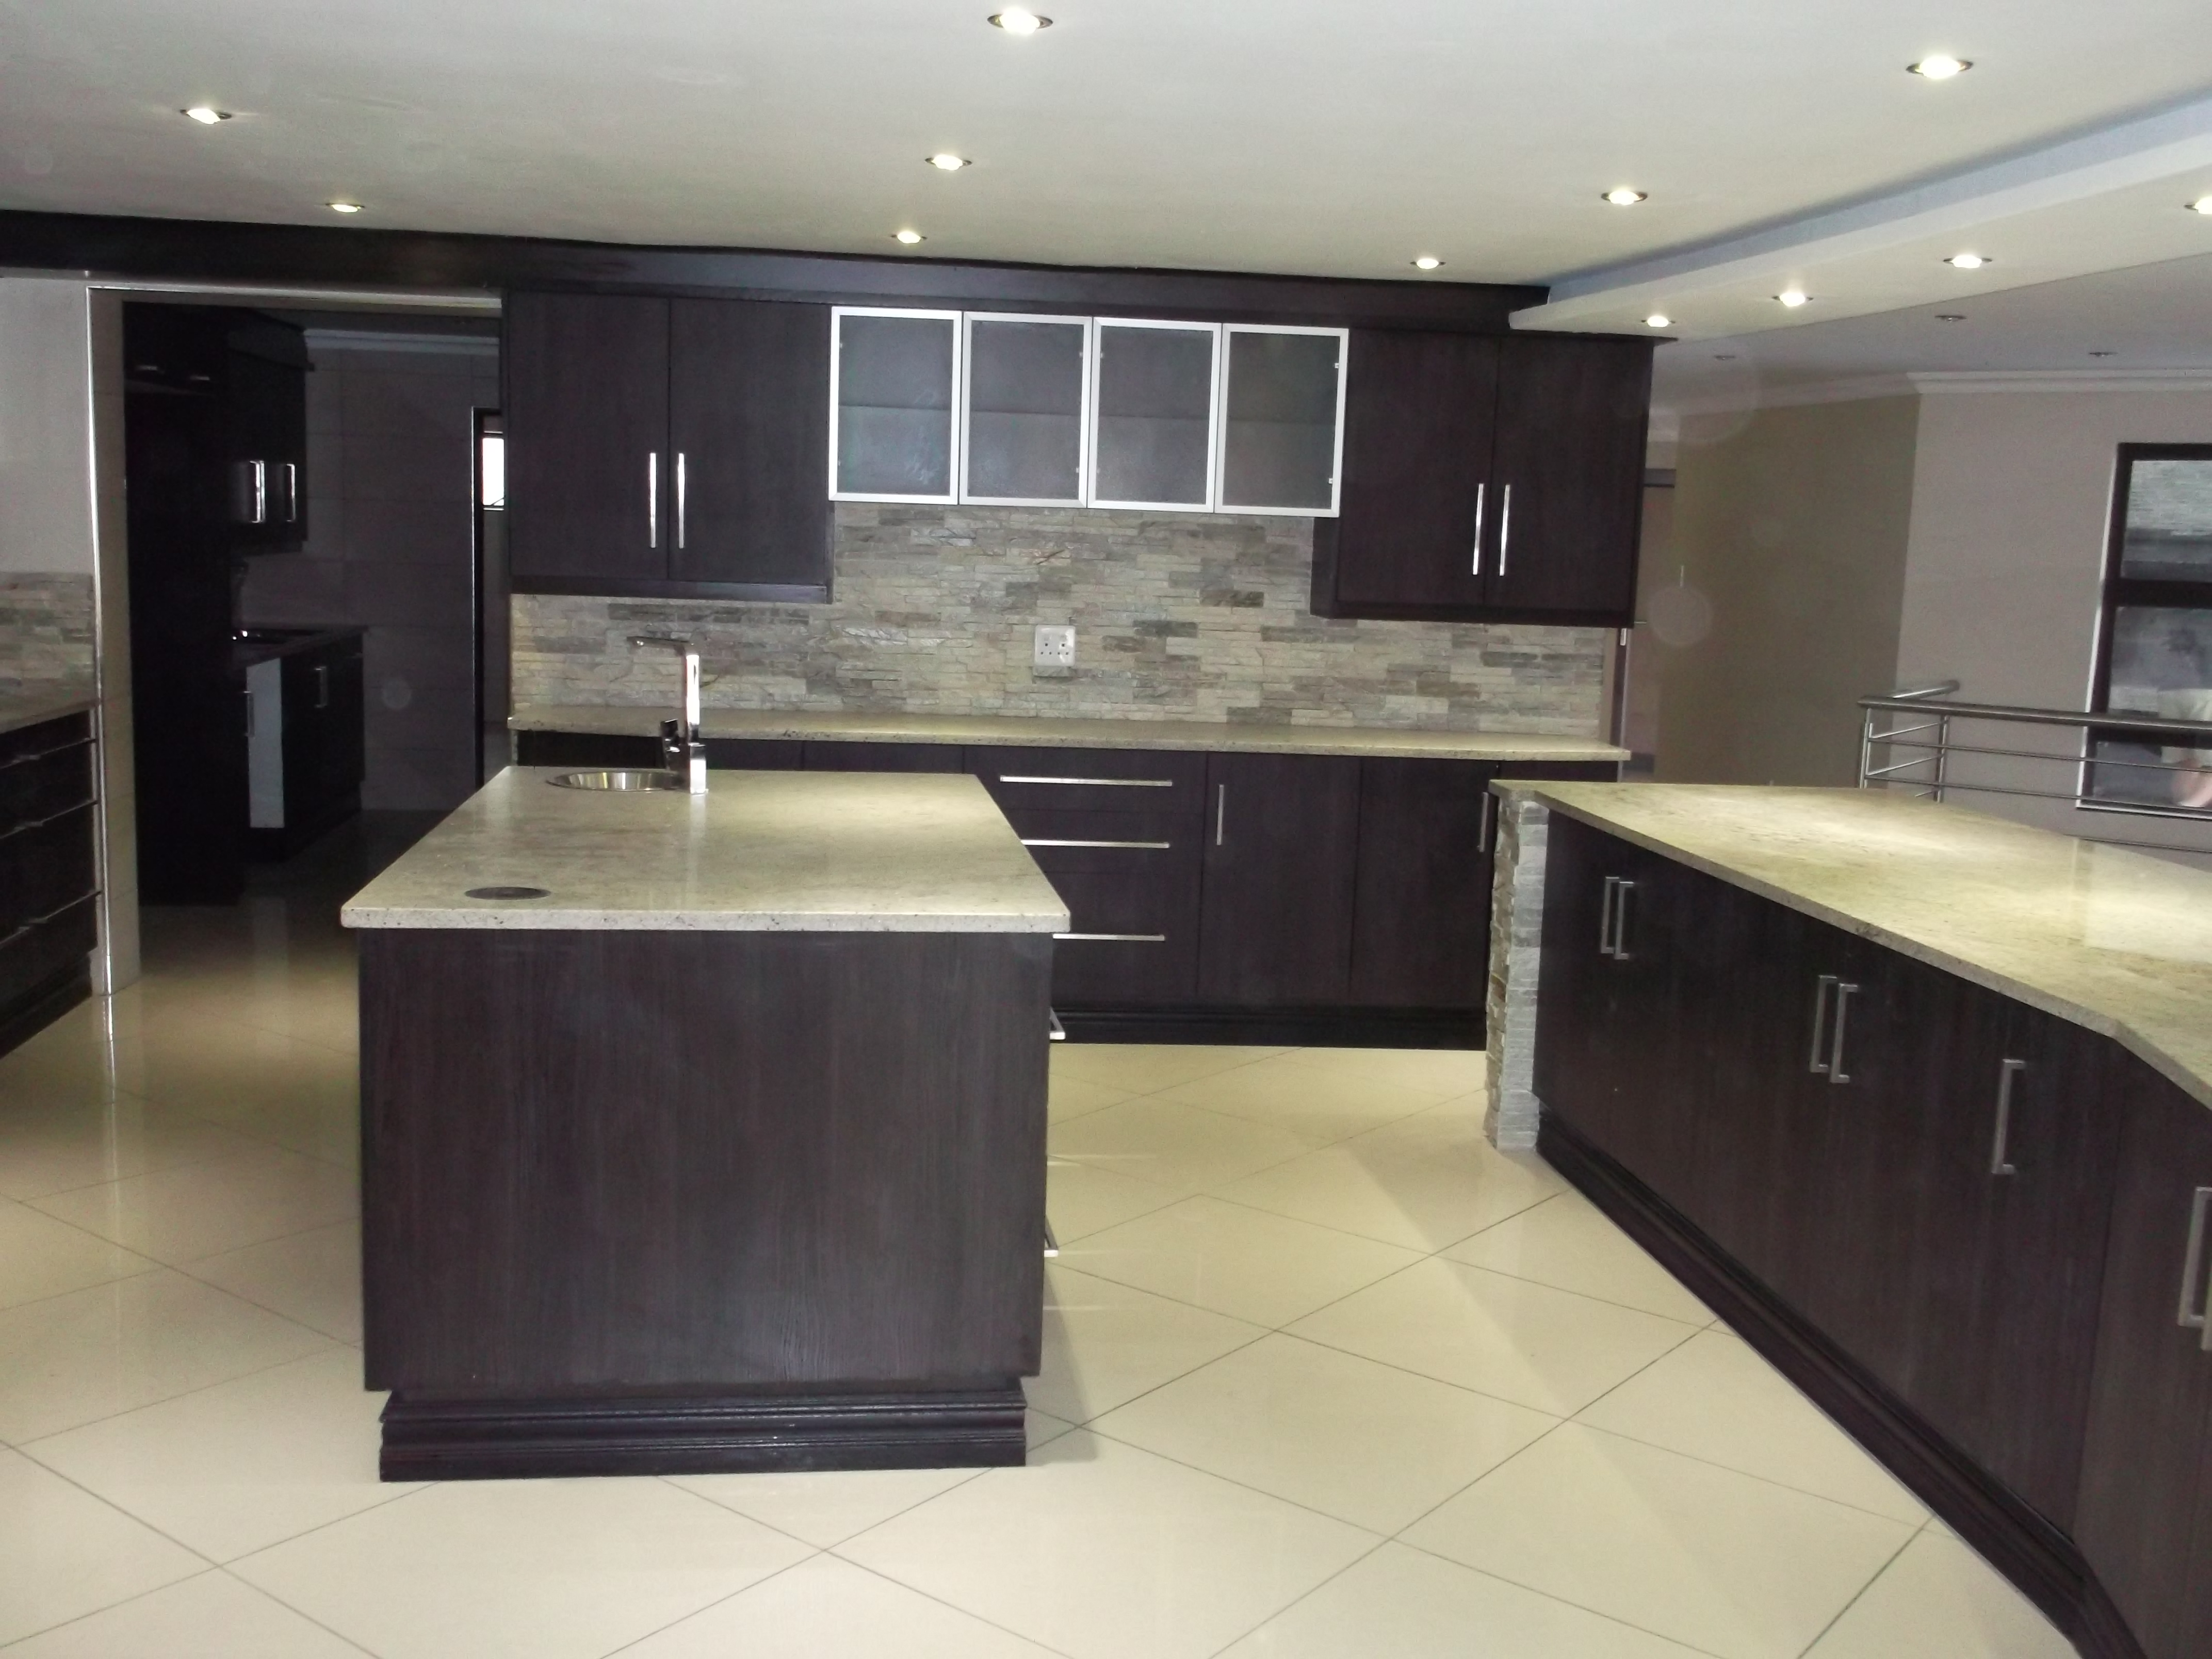 Foil wrap kitchens nico 39 s kitchens South african kitchen designs